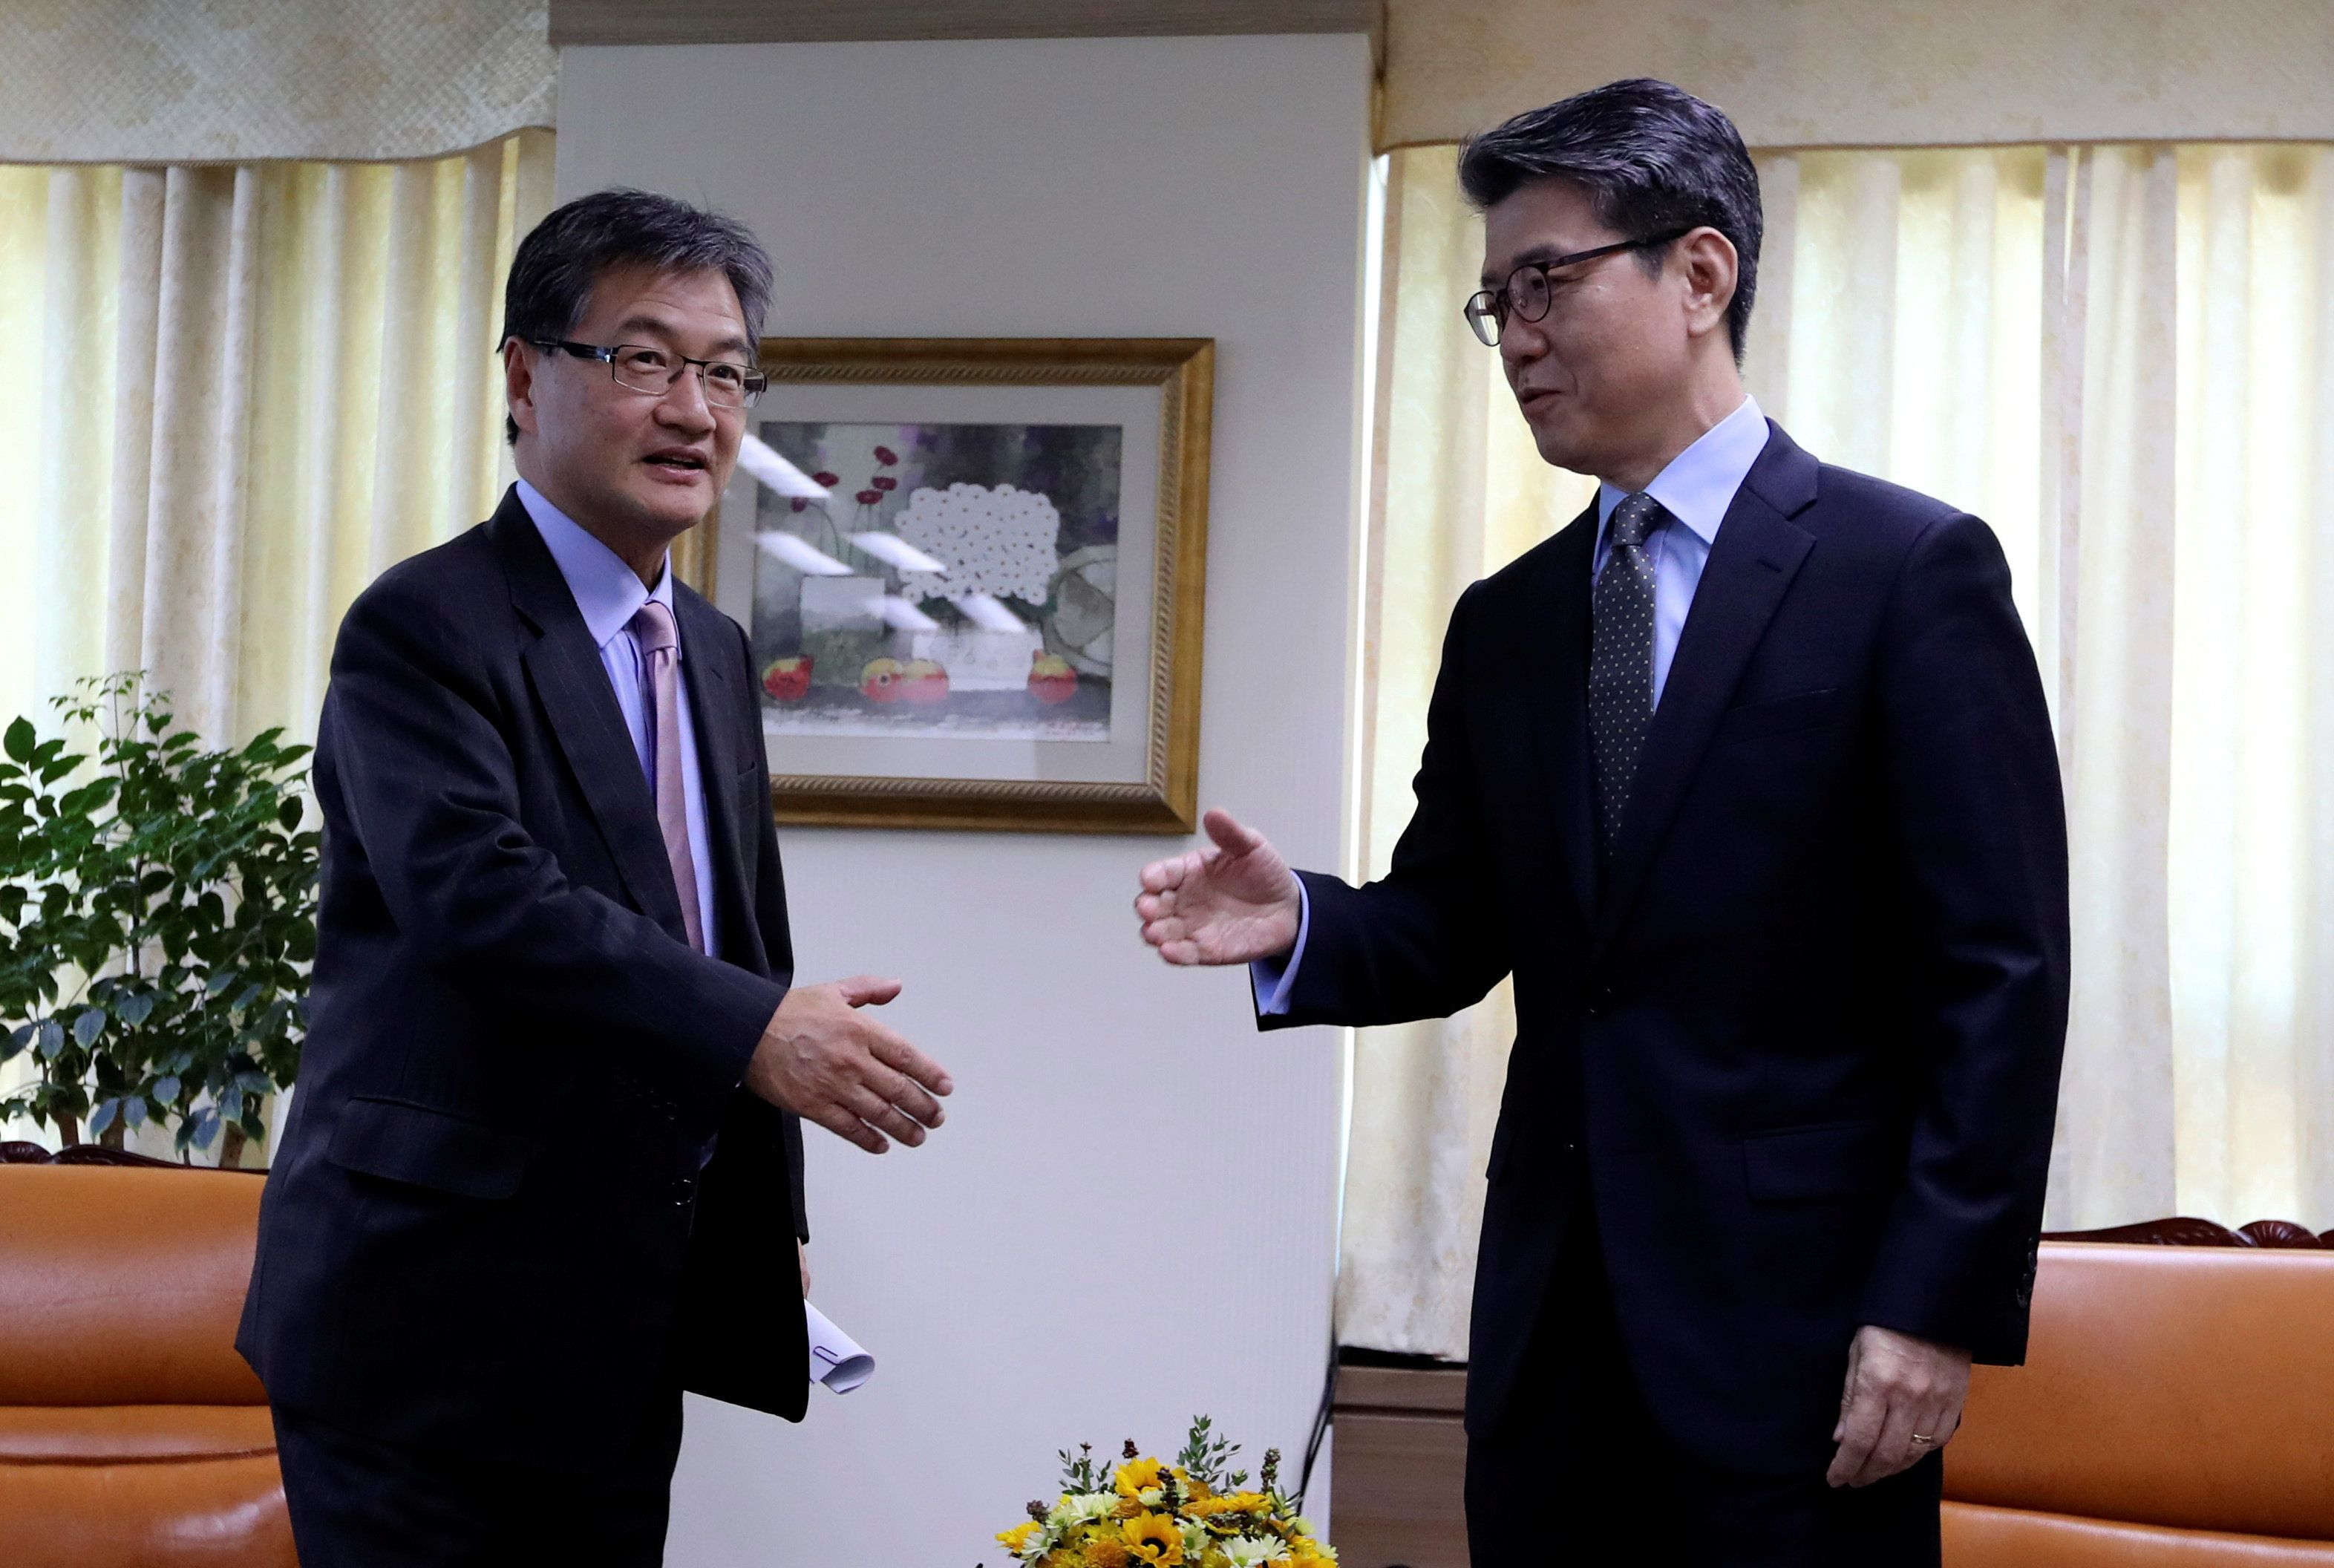 U.S. State Department's Special Representative for North Korea Policy Joseph Yun reaches to shake hands with South Korea's Special Representative for Korean Peninsula Peace and Security Affairs Kim Hong-kyun during their meeting at the Foreign Ministry in Seoul, South Korea November 1, 2016. REUTERS/Lee Jin-man/Pool